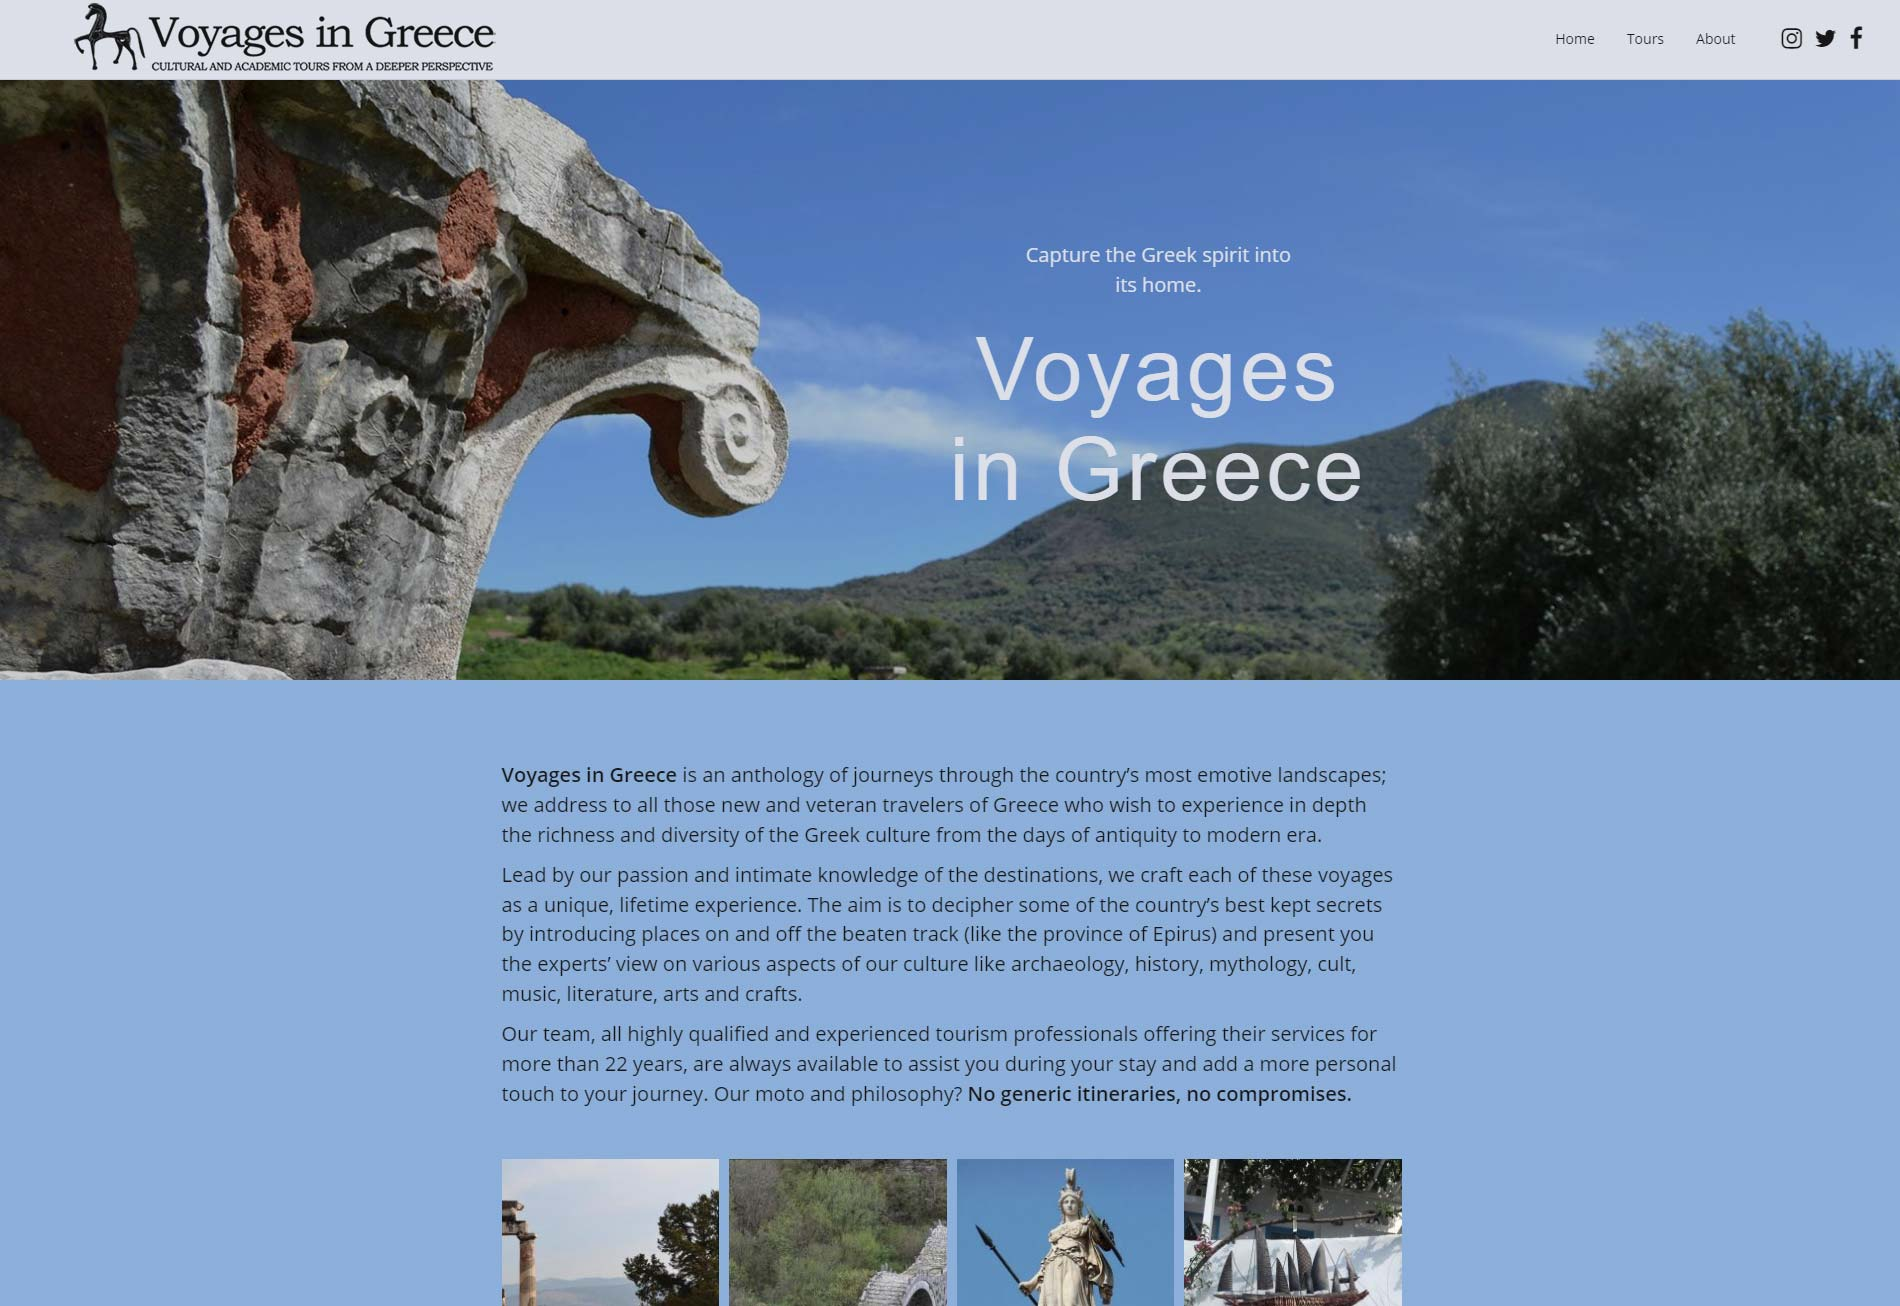 Voyages in Greece